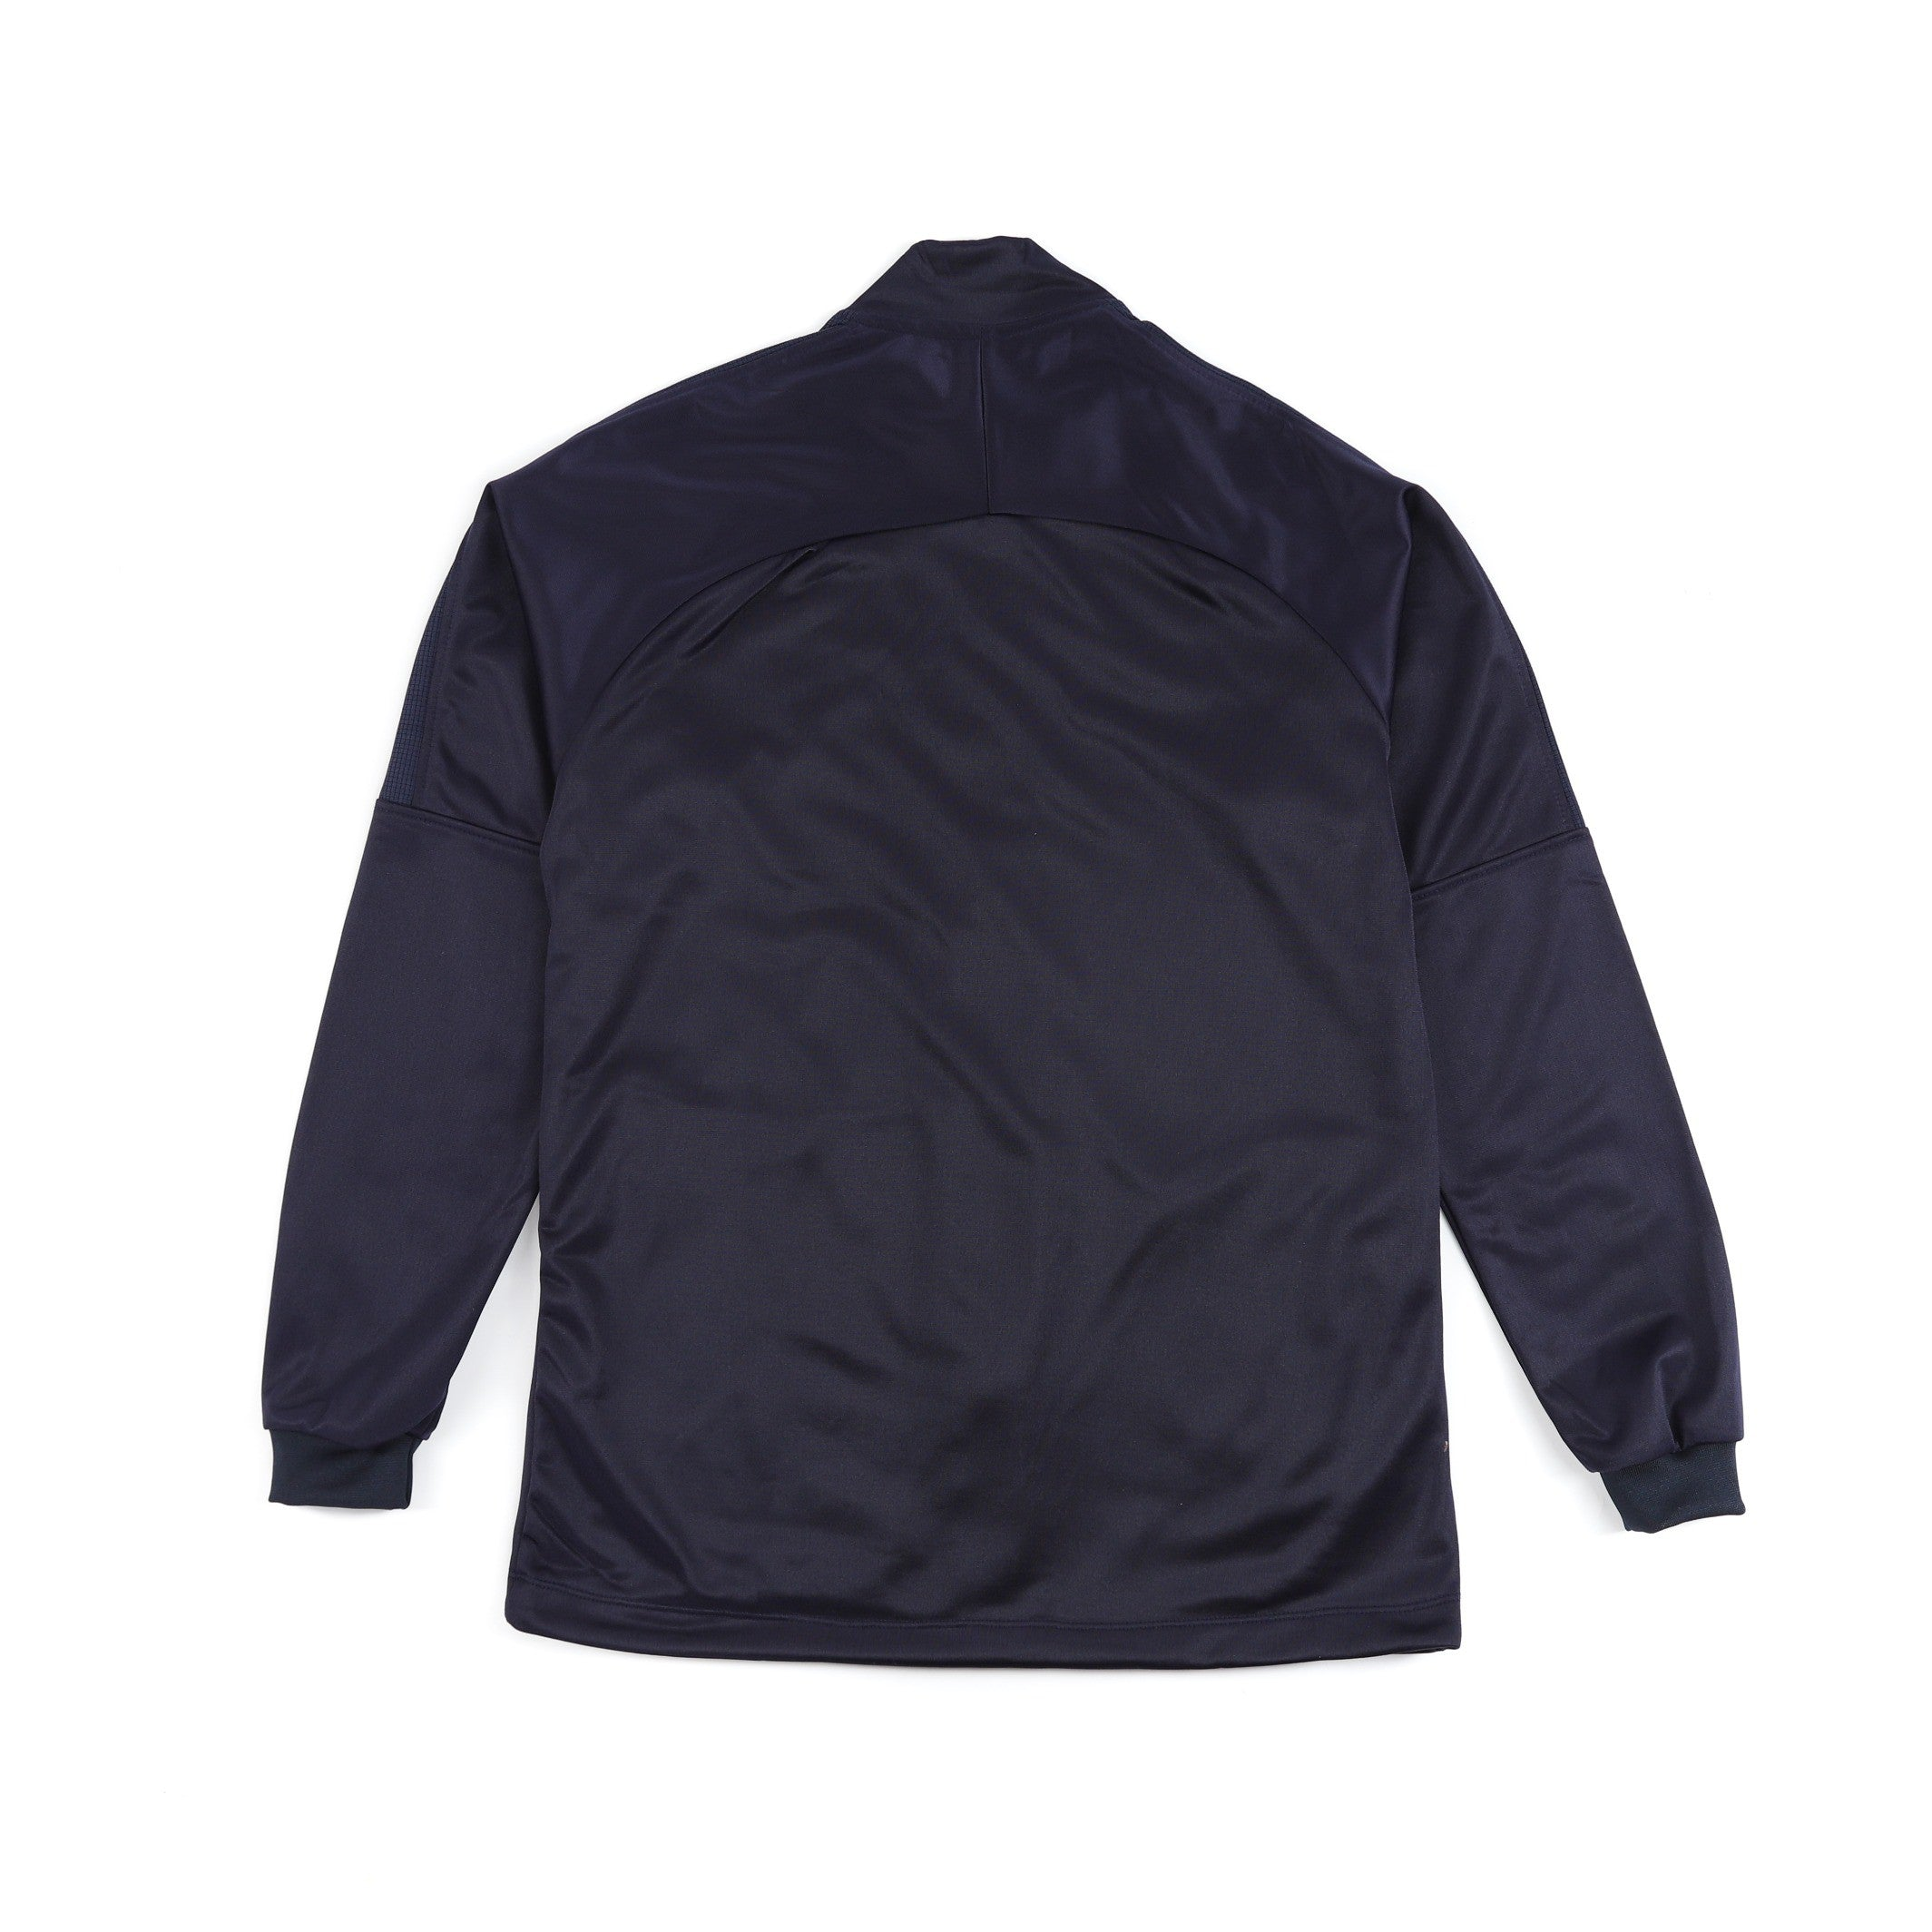 TRACKTOP JACKET RAVEN NAVY SERIES